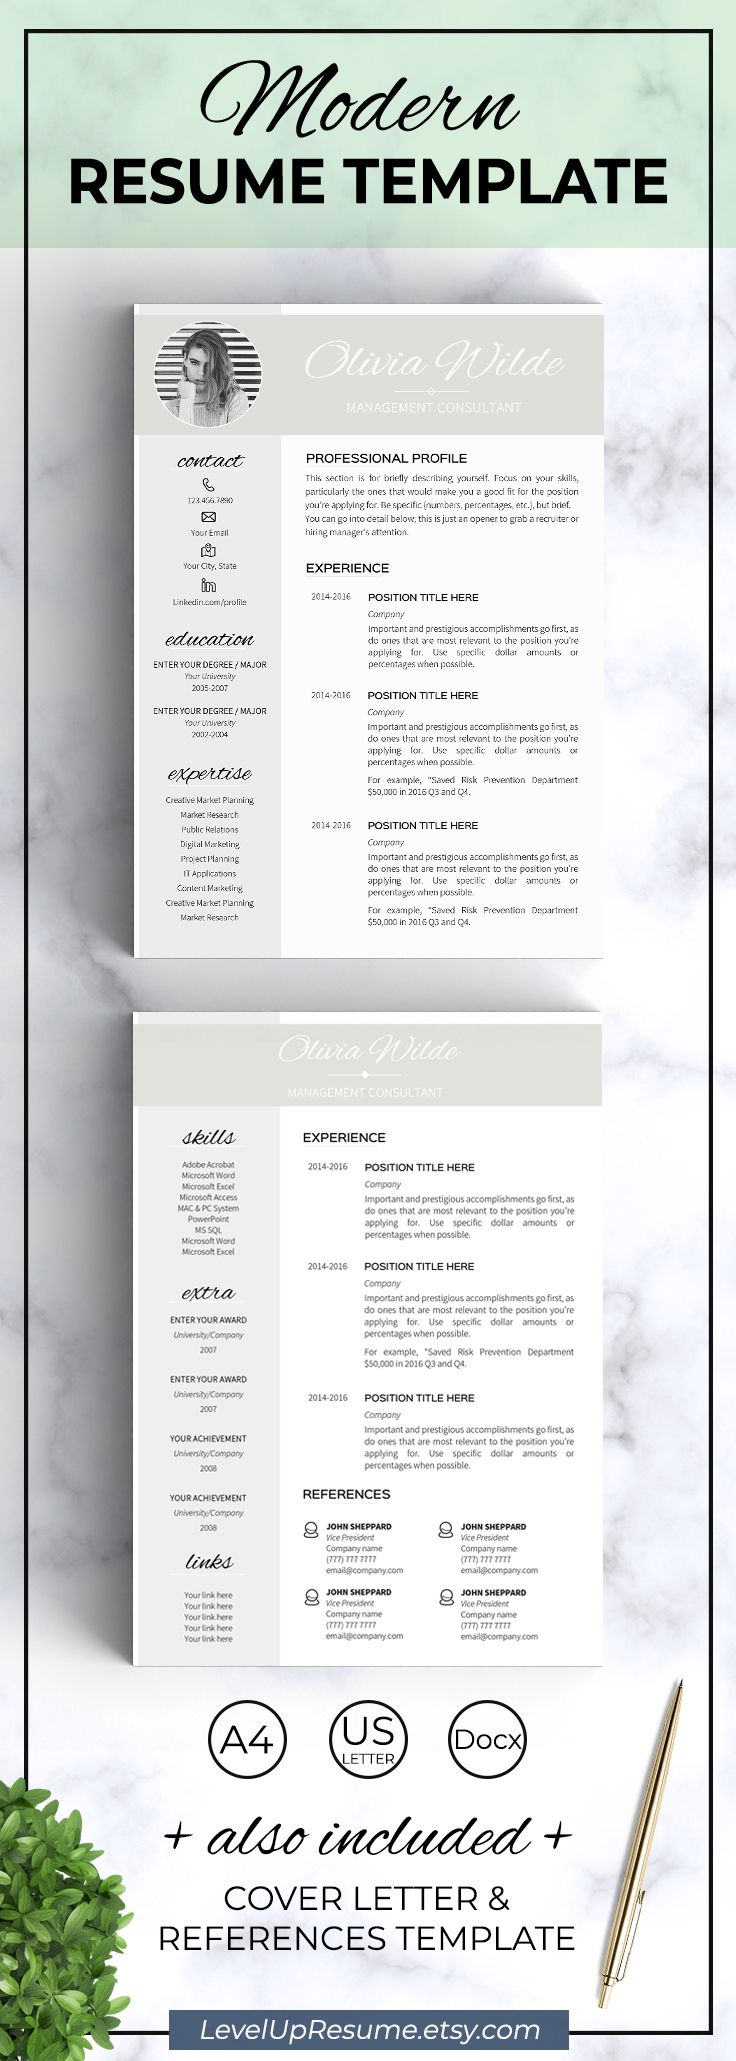 Best Resumes Images On   Resume Fonts Resume Ideas